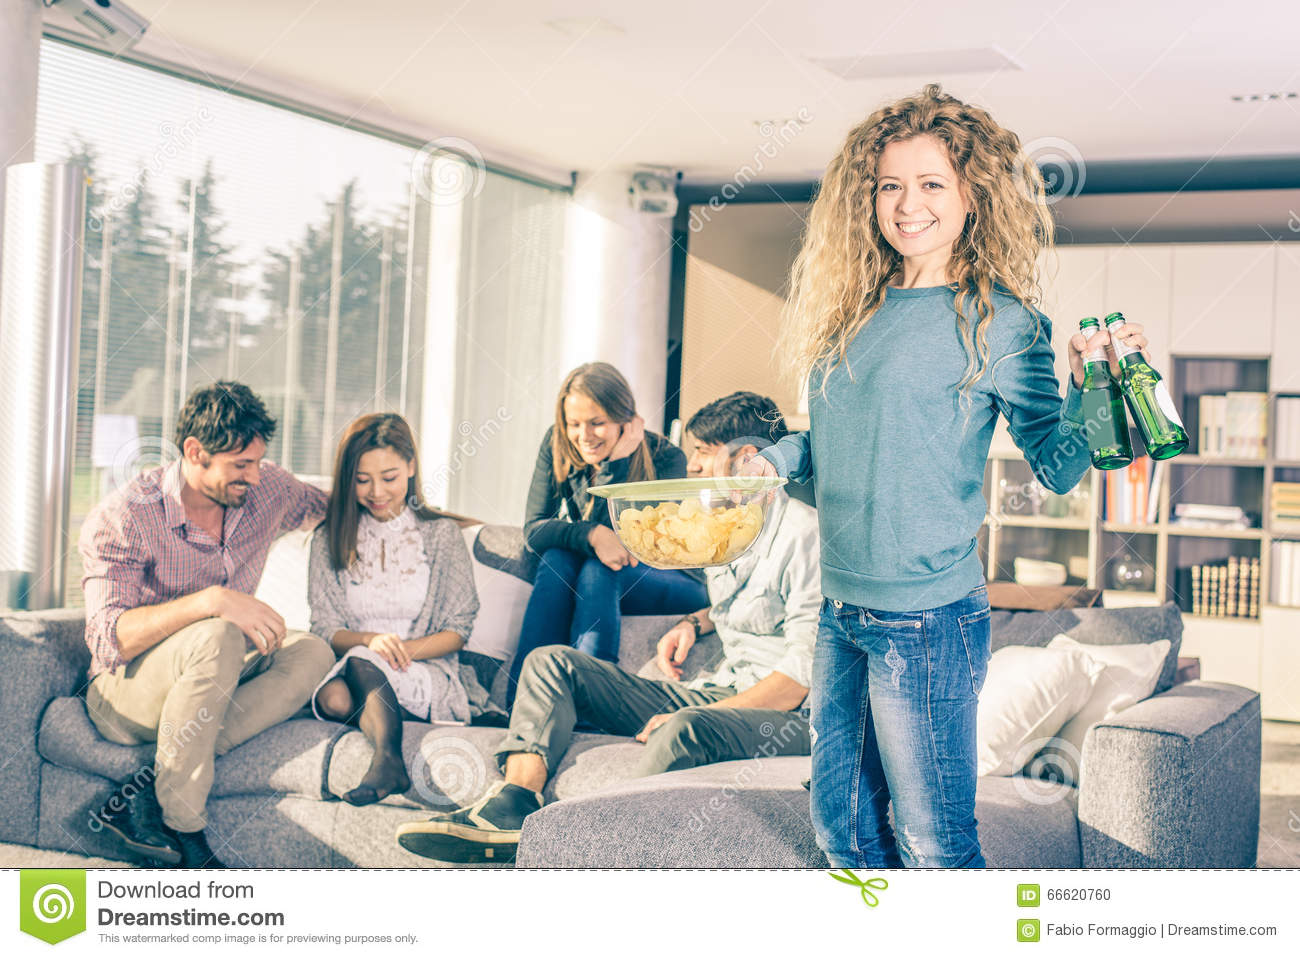 At Home Design: Friends At Home Party Stock Photo. Image Of Hispanic